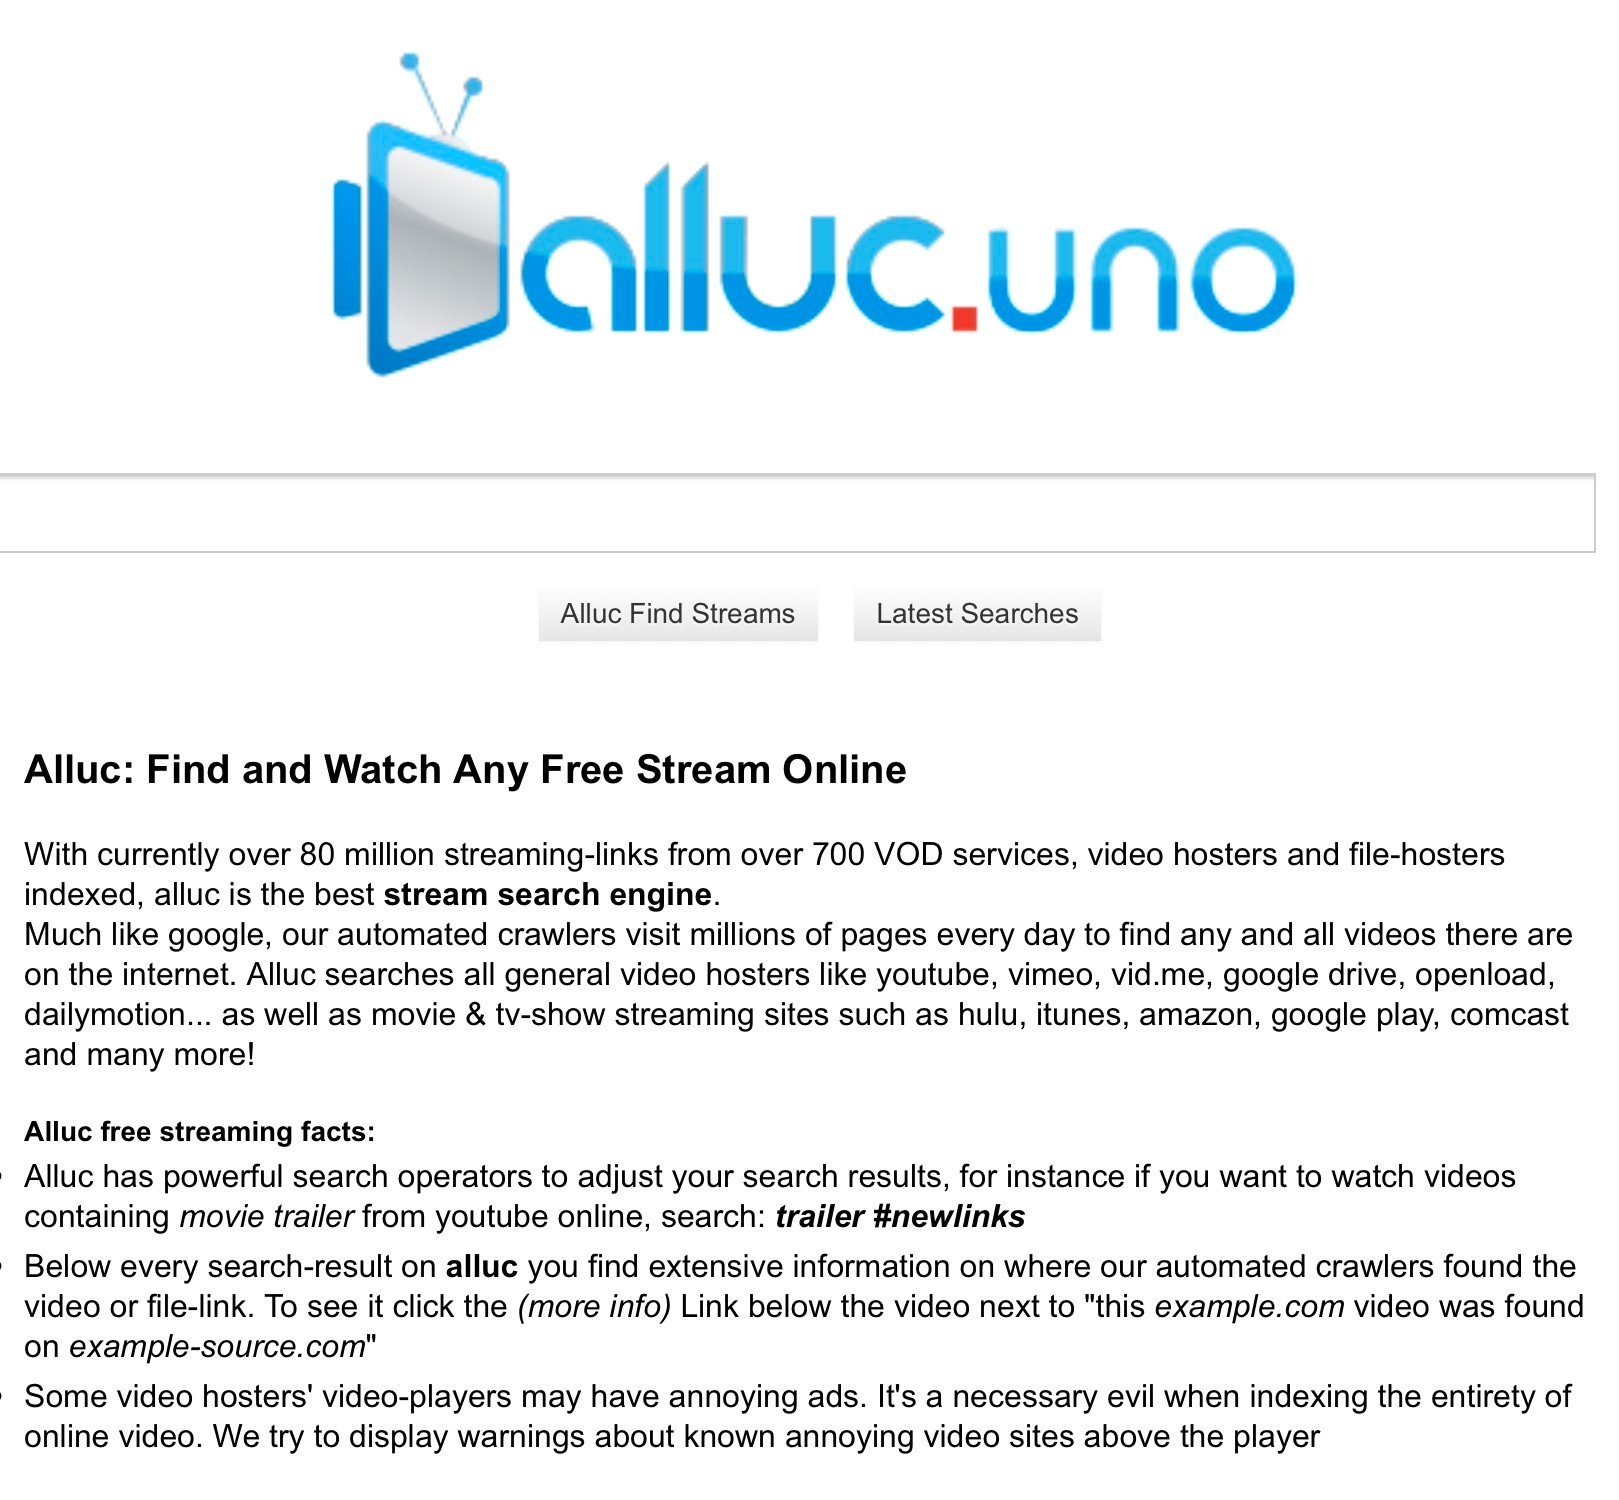 Alluc uno Alternatives and Similar Websites and Apps